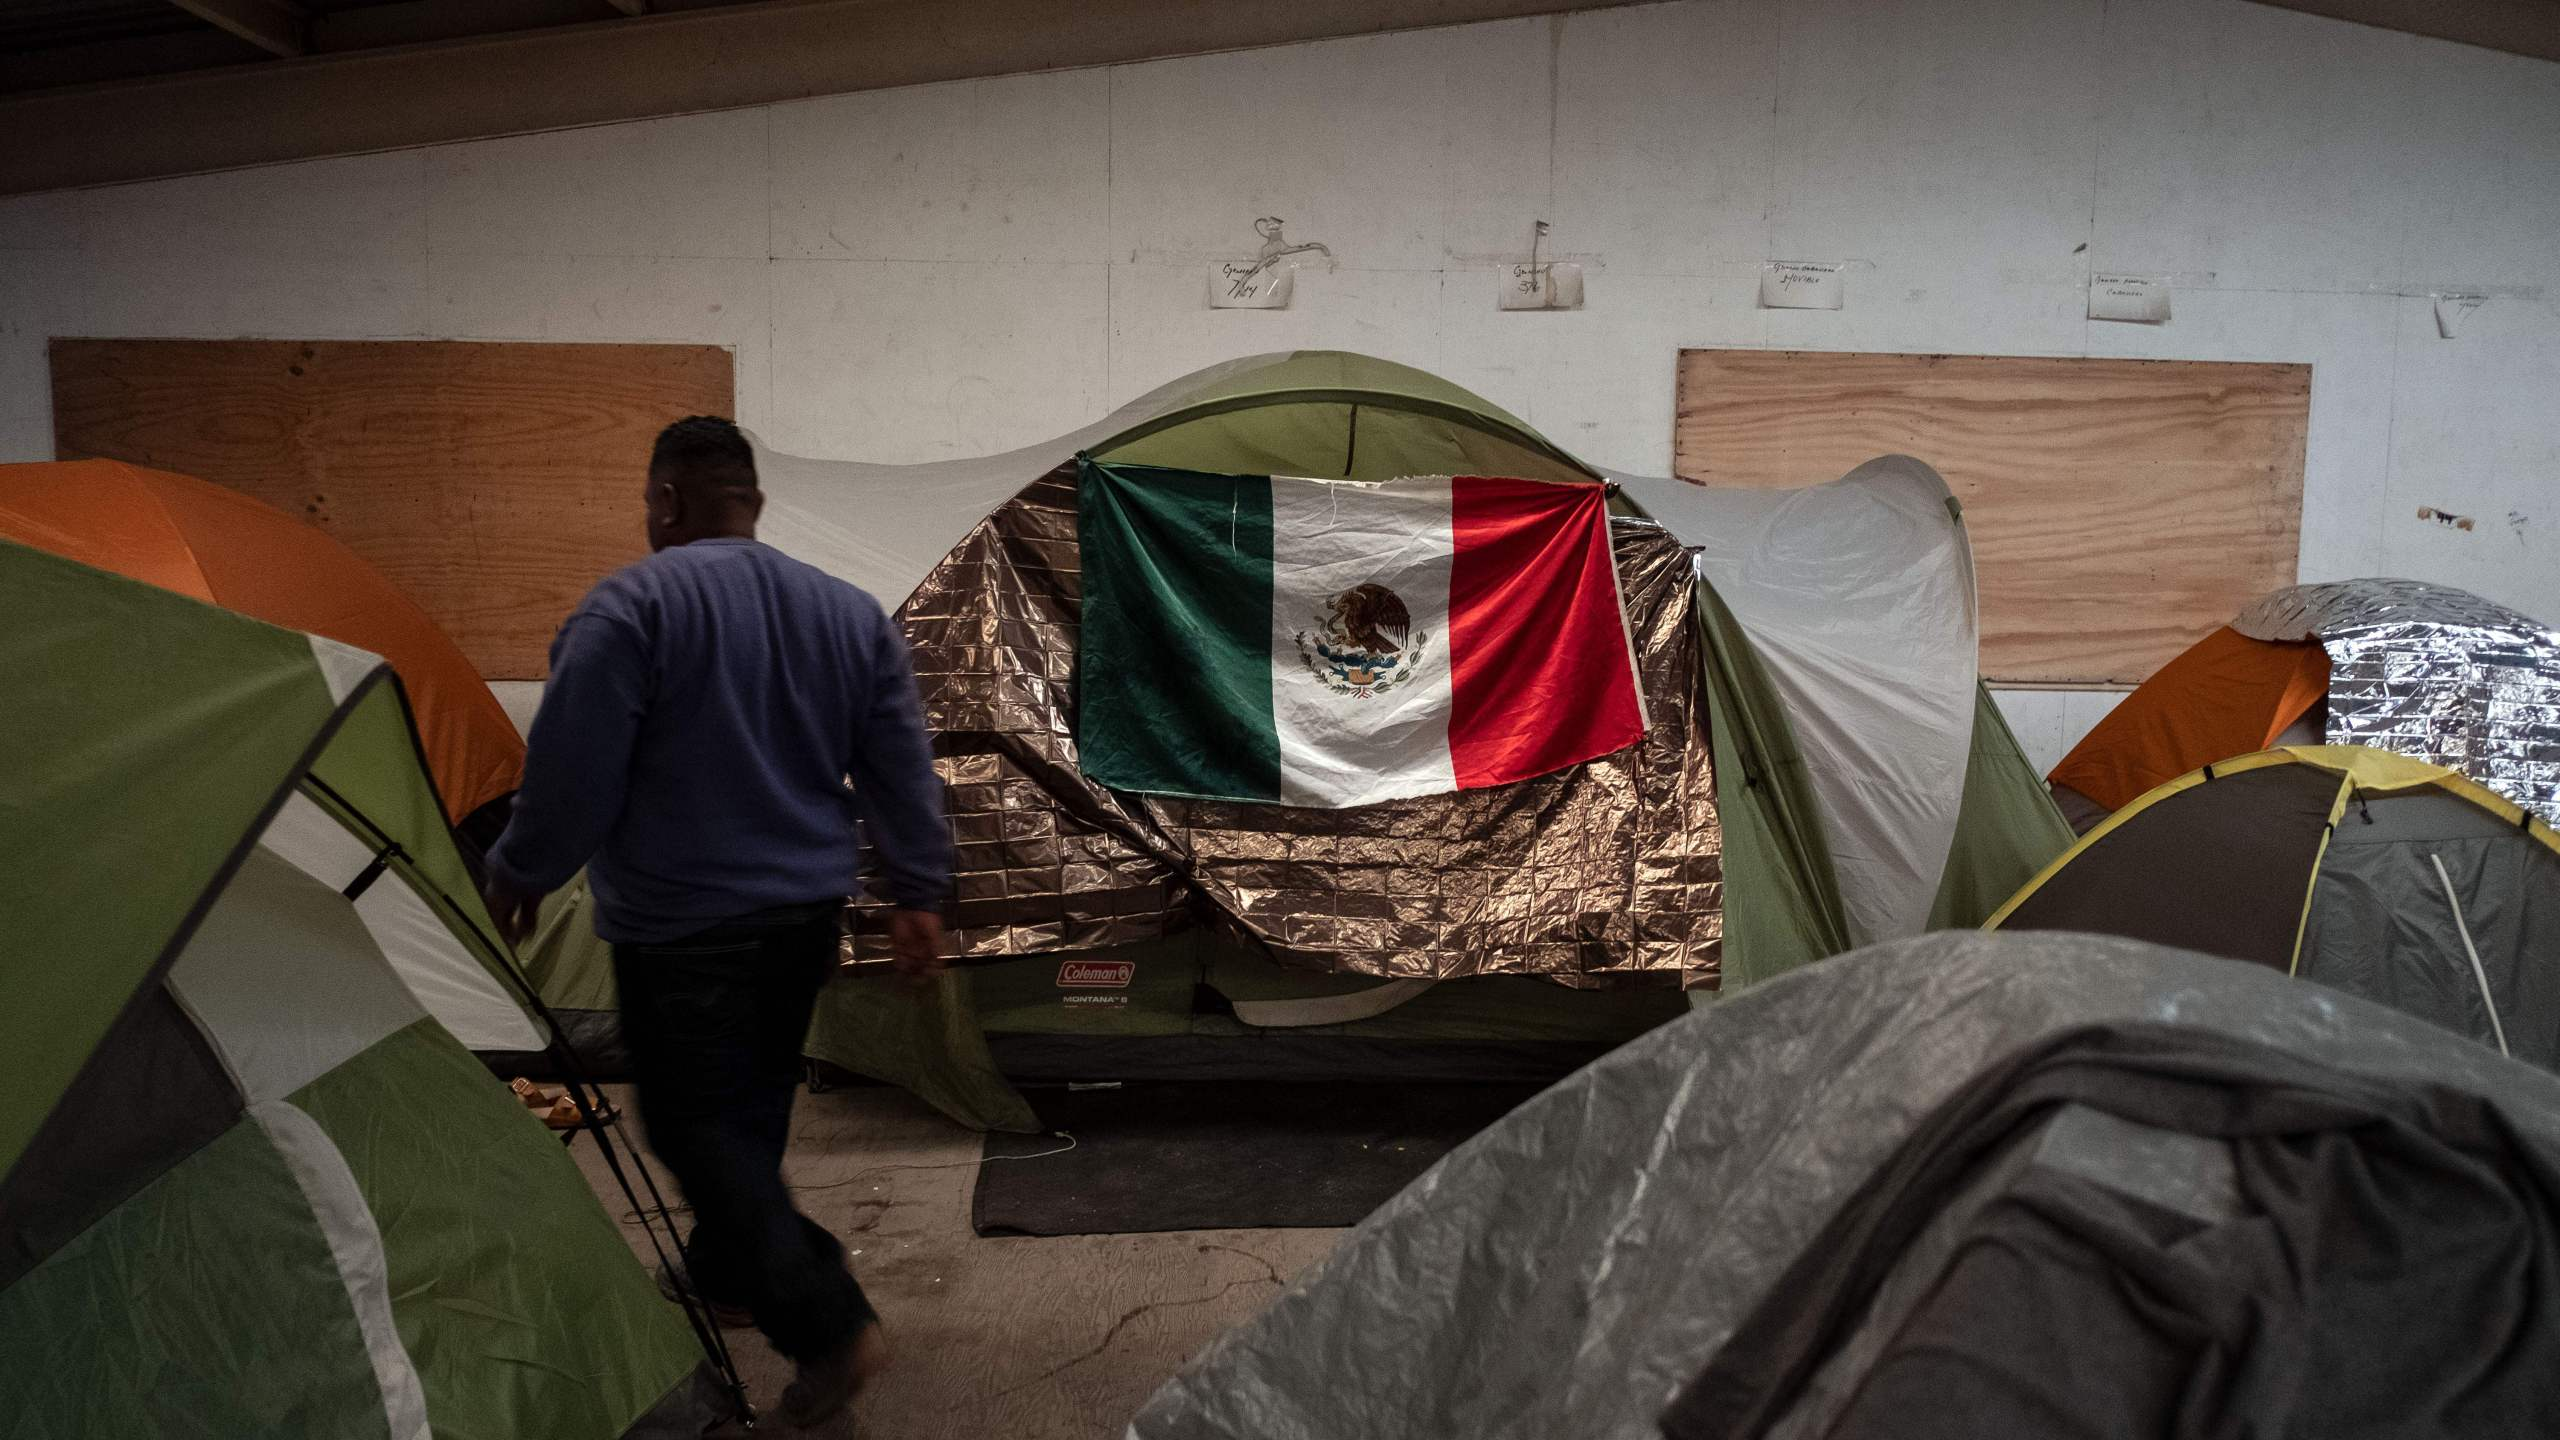 A Central American migrant who travelled in a caravan to the Mexico-U.S. border walks between tents at a temporary shelter in downtown Tijuana on Dec. 17, 2018. (Credit: Guillermo Arias / AFP / Getty Images)